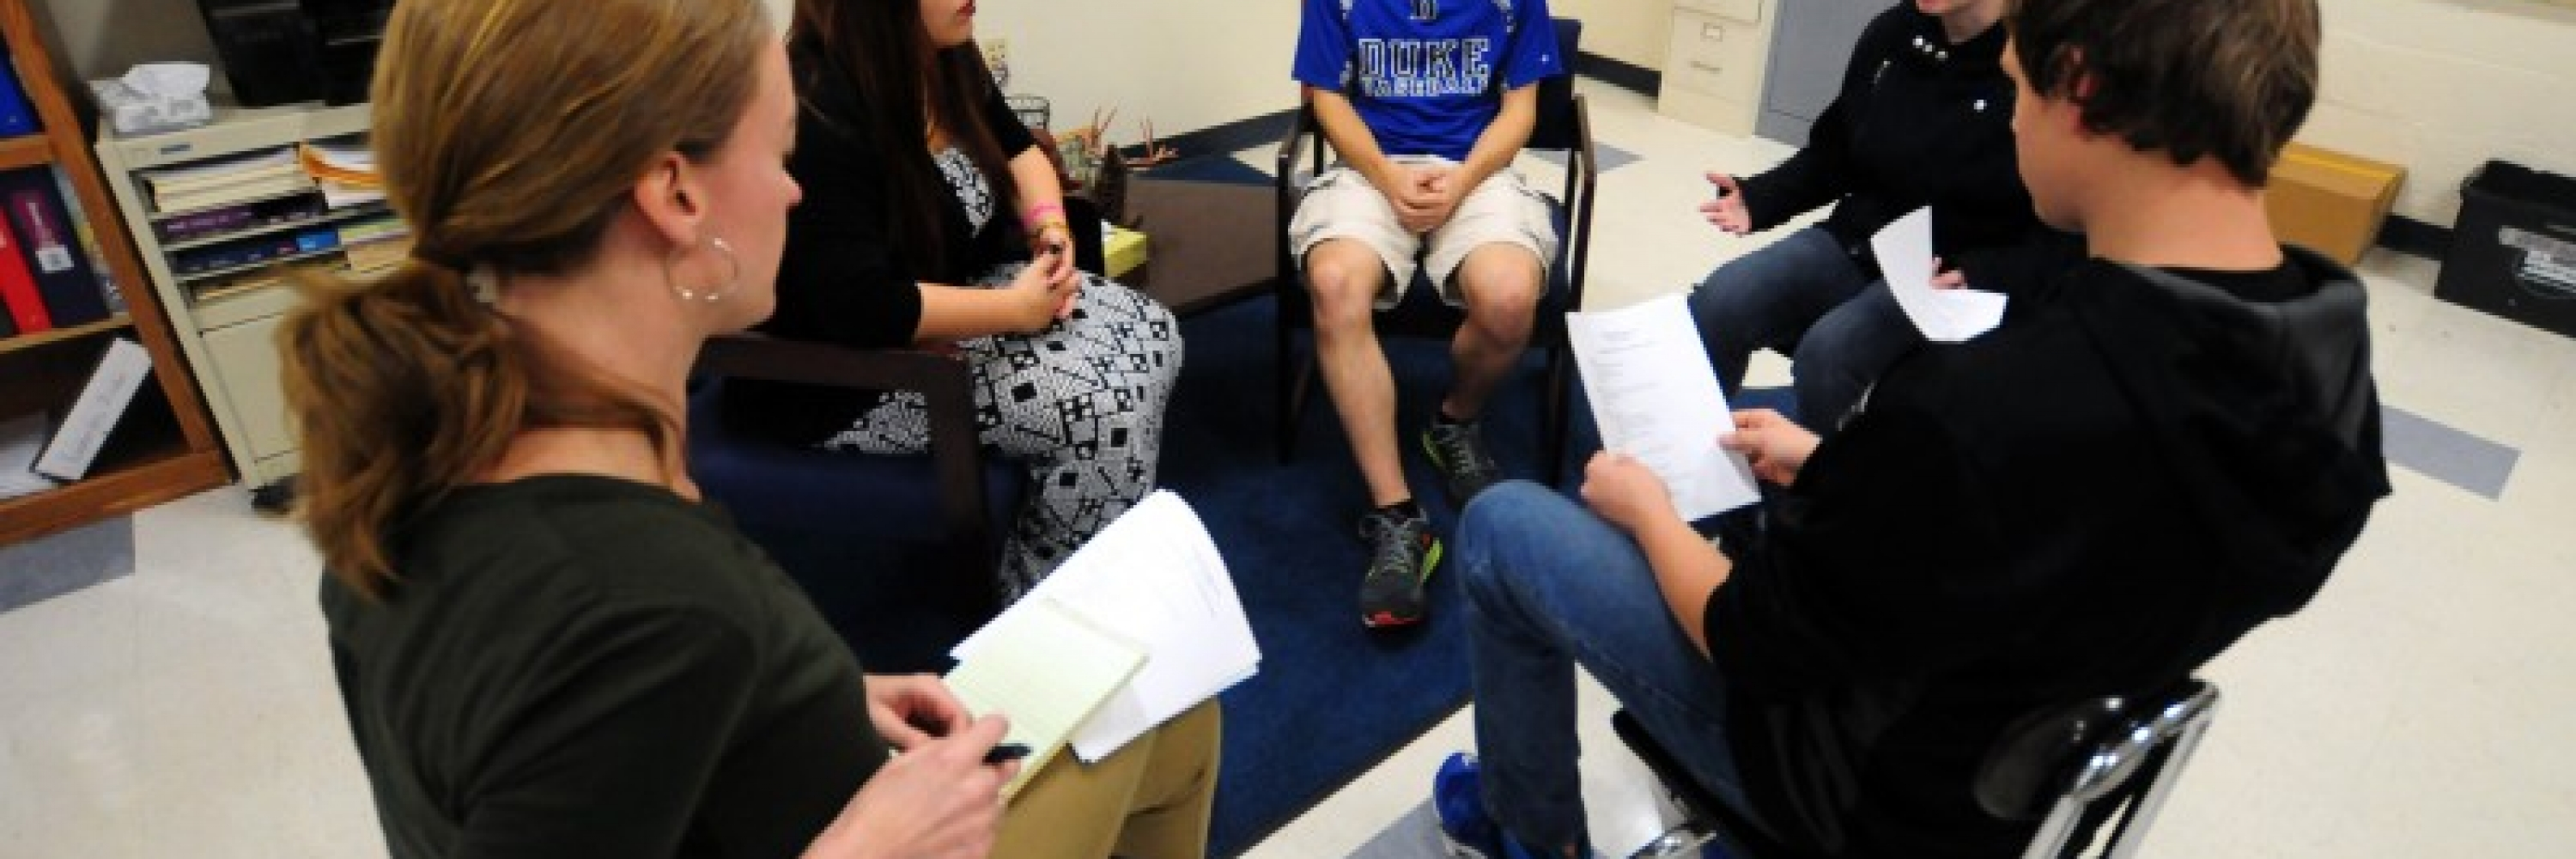 Restorative Justice Conferencing training with Advoz, Photo credit: Jim Vaiknoras - The Hechinger Report